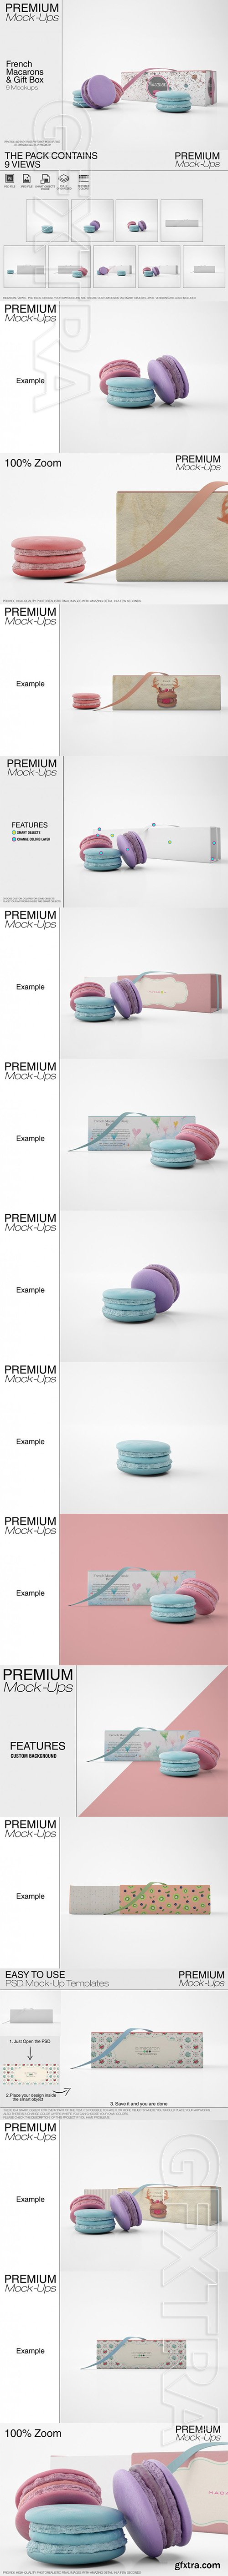 GR - French Macarons & Gift Box Mockup Pack 22050554